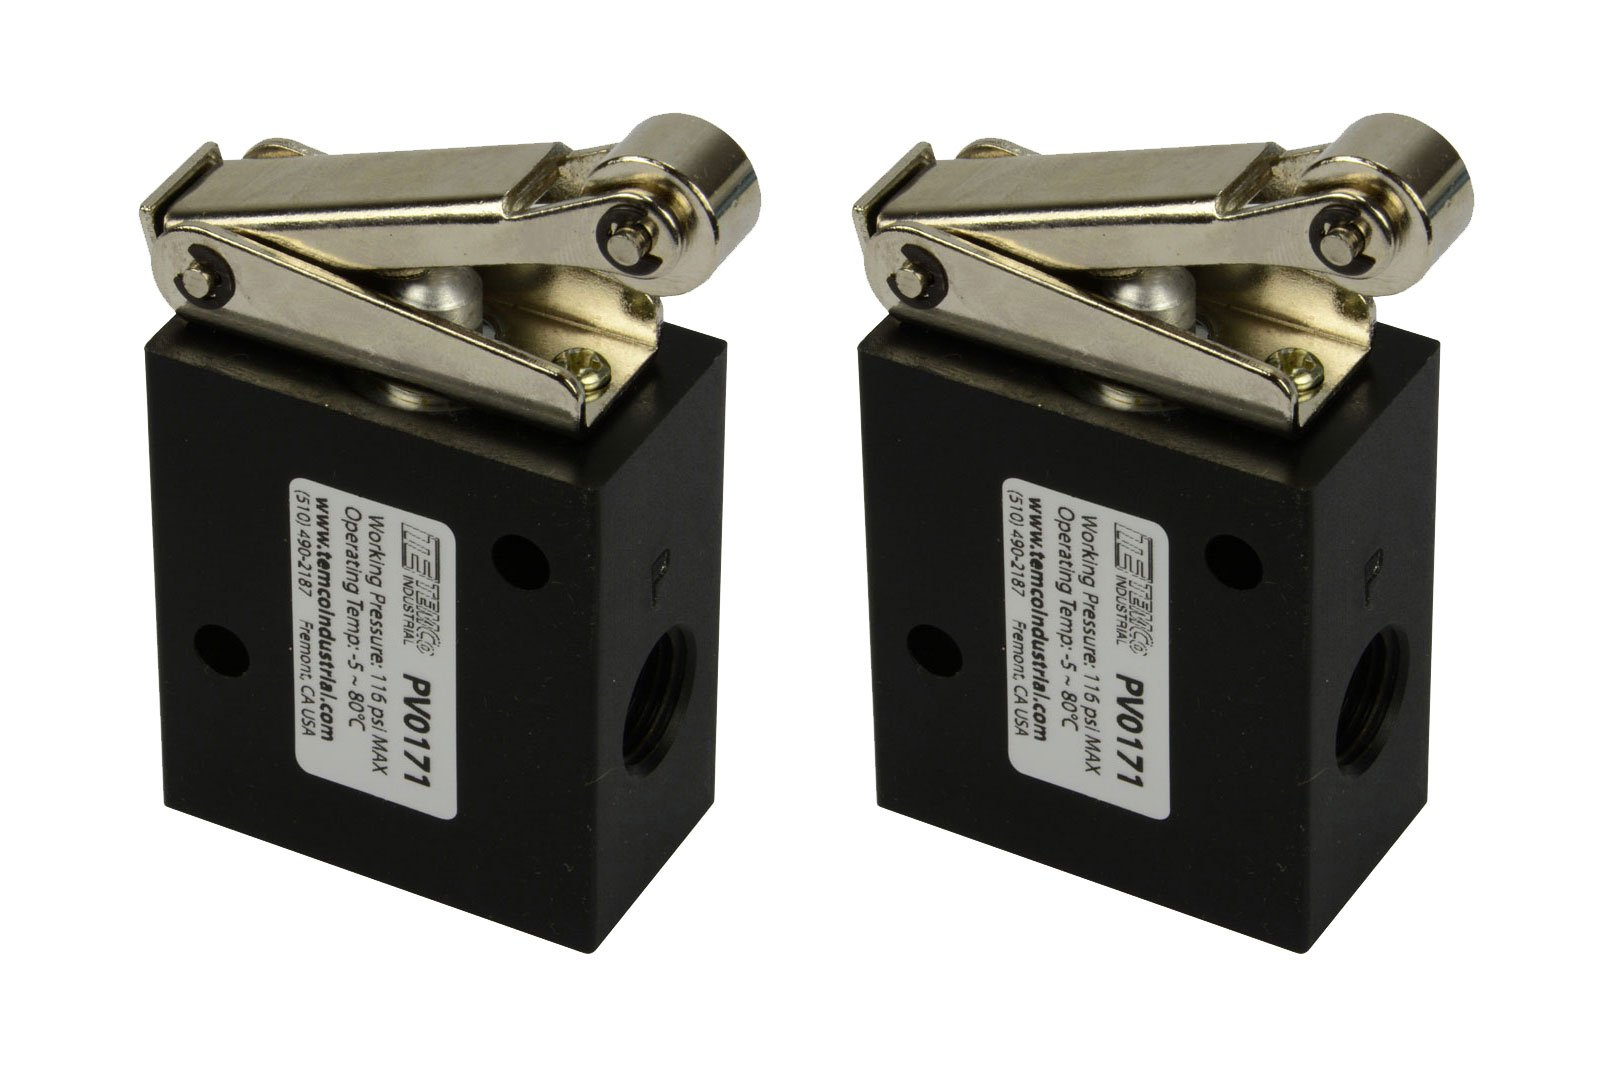 2 Qty Roller Limit Switch Normally Closed Pneumatic Air Control Valve 3 Port 3 Way 2 Position 1/4'' NPT by TEMCo